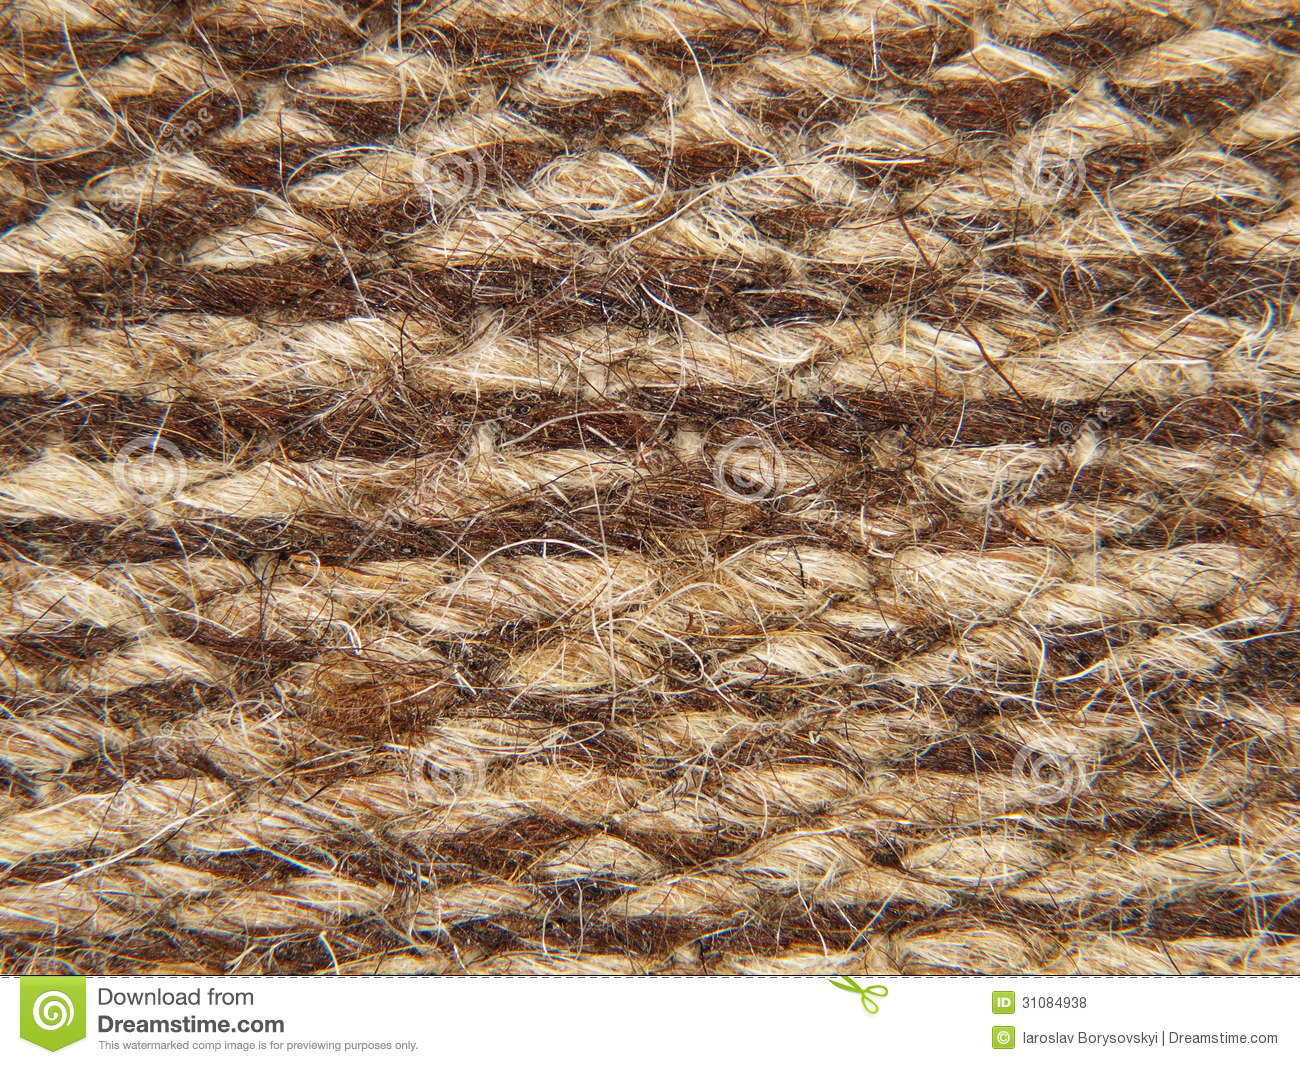 Rough Knit Camel Wool Fabric Texture Pattern Royalty Free